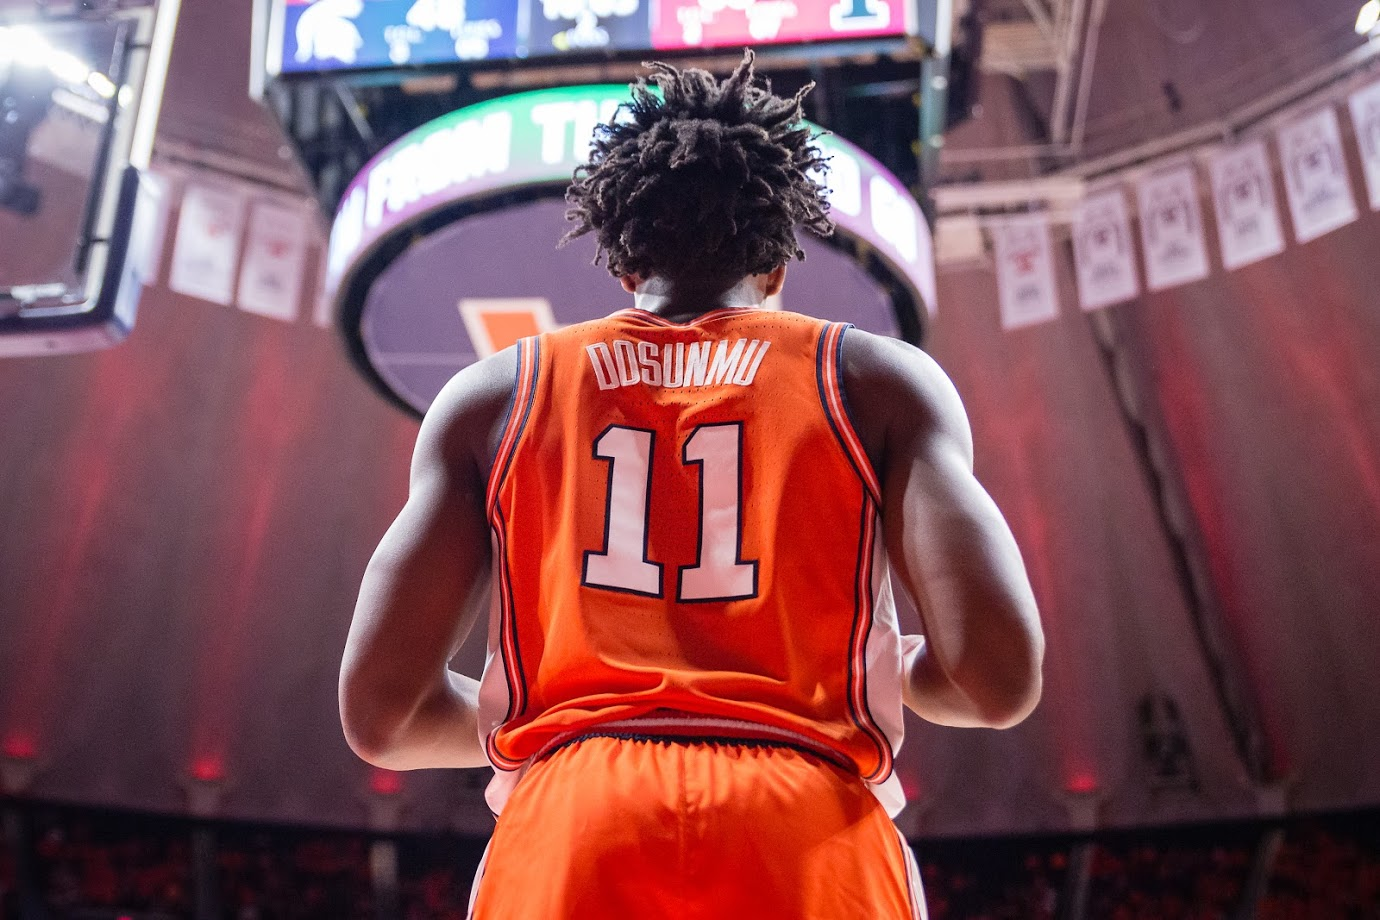 Illinois guard Ayo Dosunmu waits to throw the ball in during the game against Michigan State at the State Farm Center on Feb. 5. The Illini won 79-74.